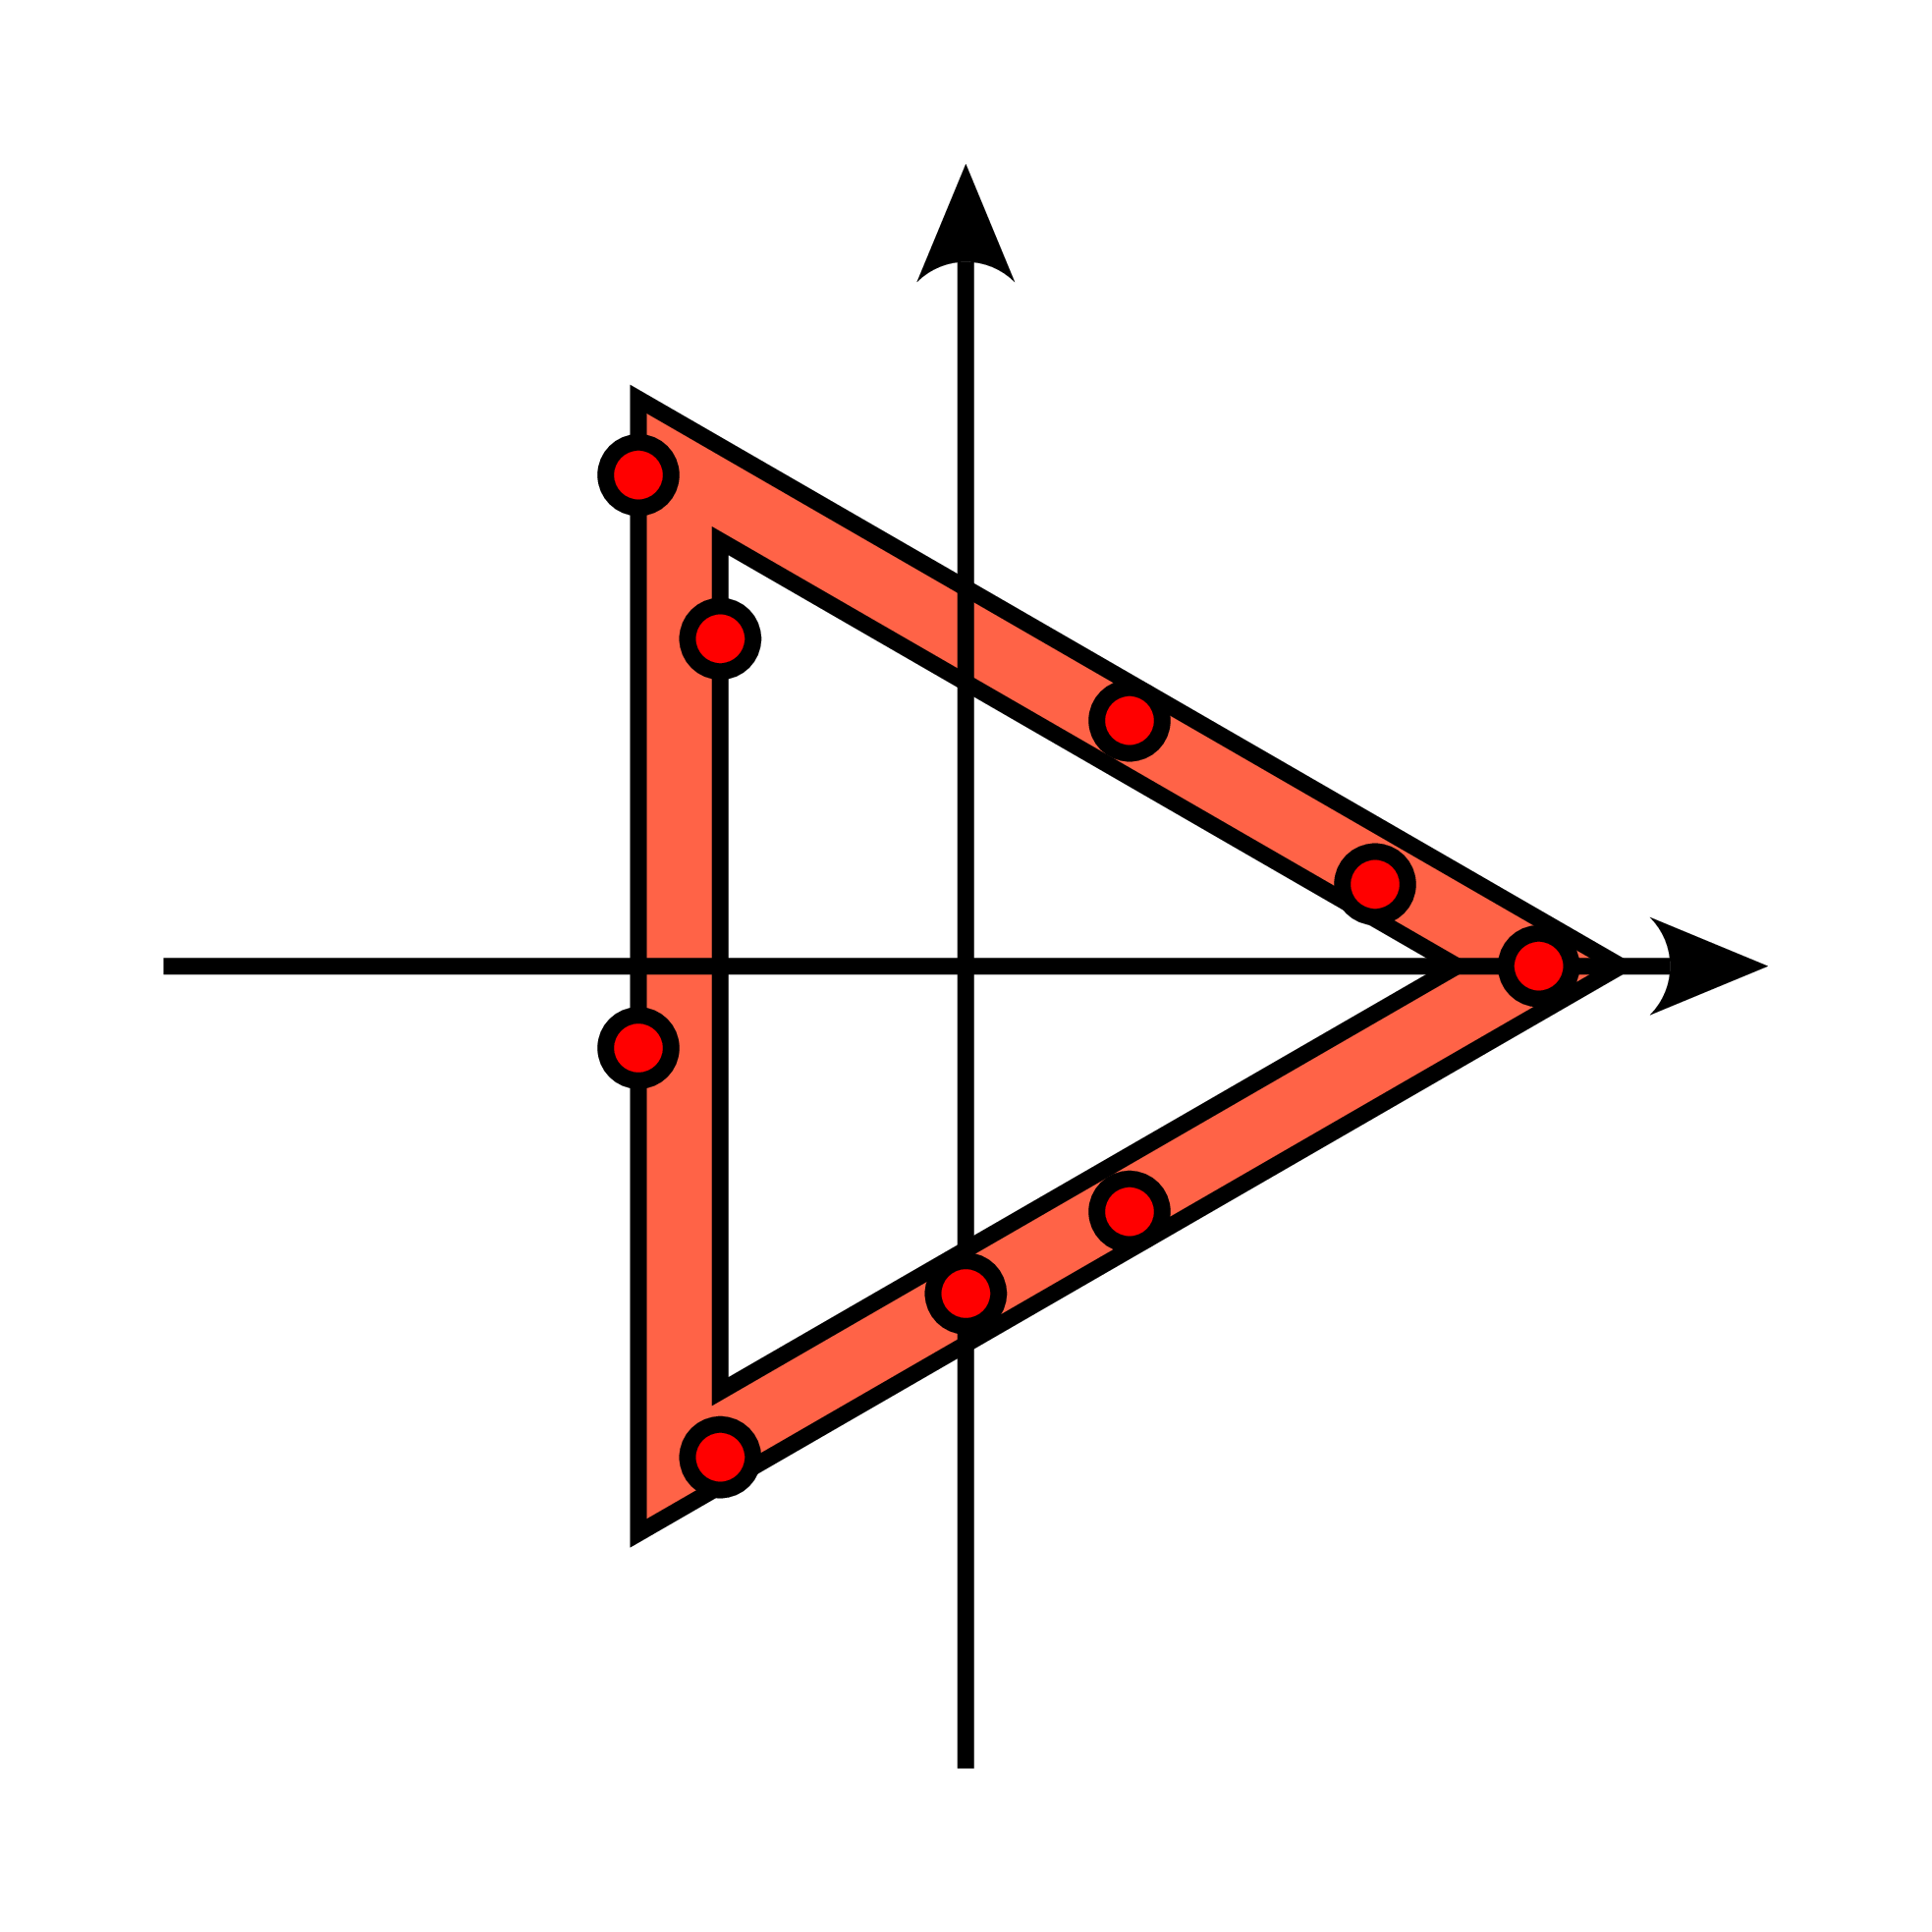 \includegraphics[width=5.2cm]{1-triangle.pdf}